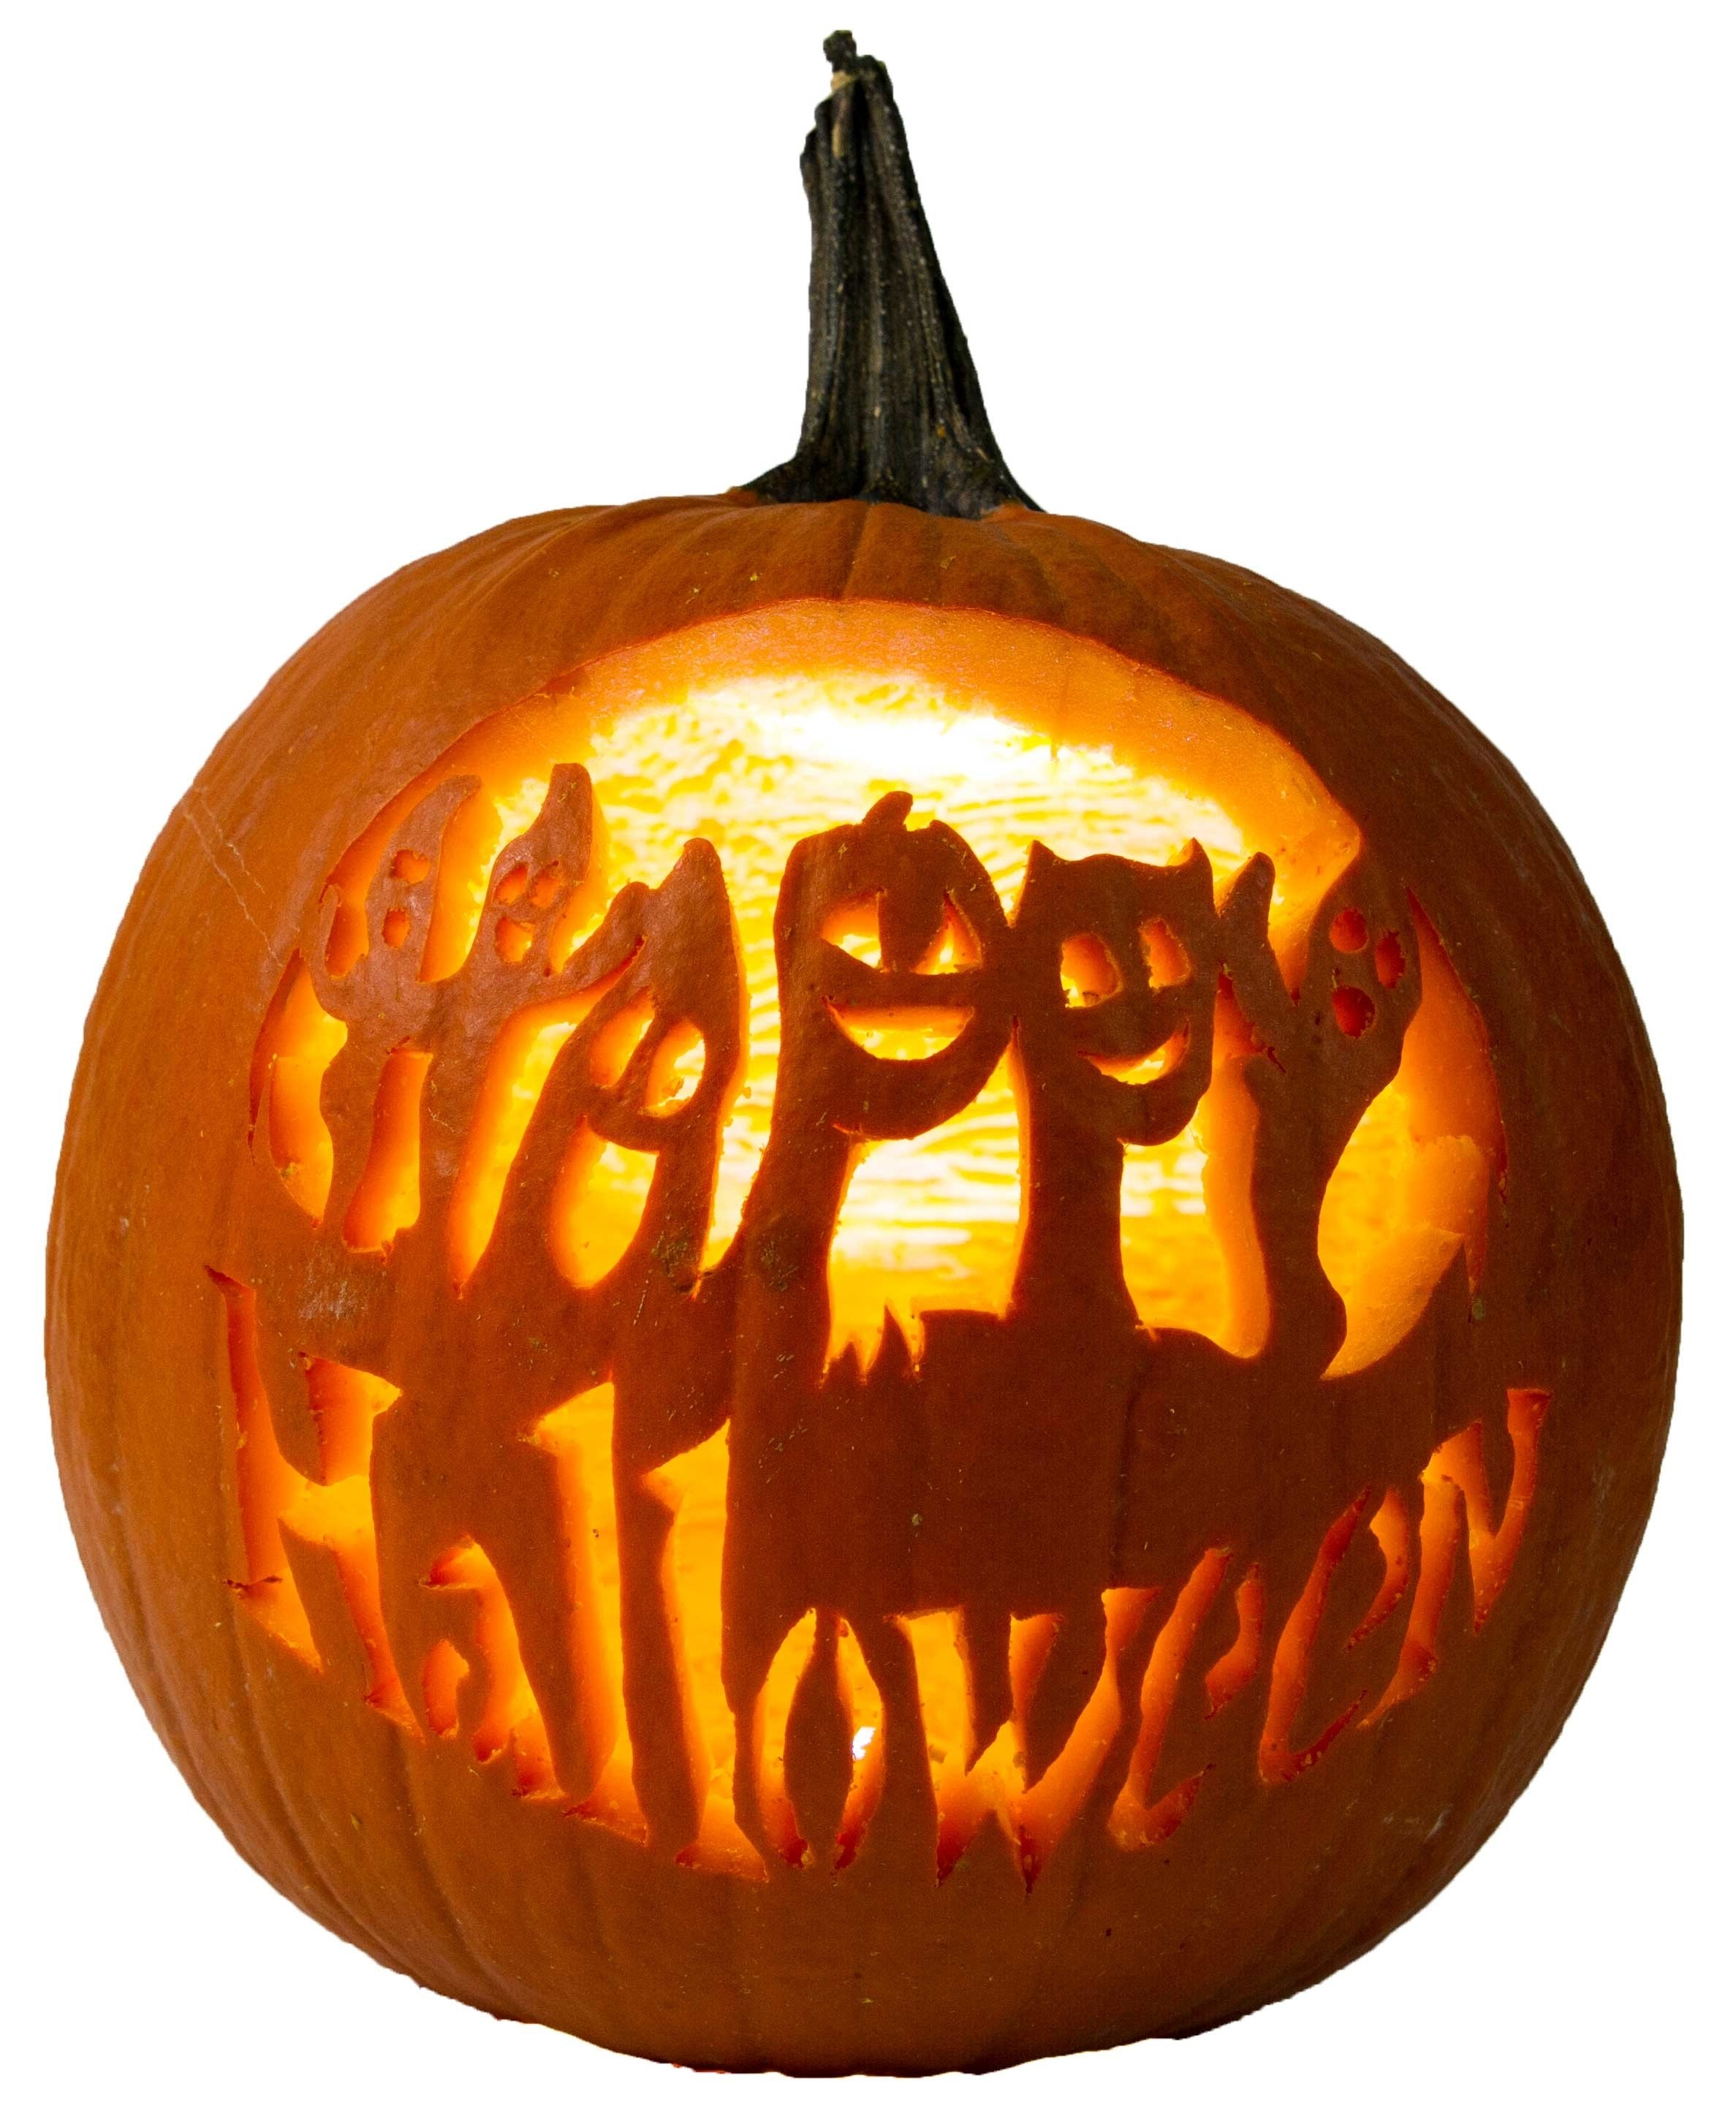 10 Best Jack O Lantern Ideas To Carve 24 creative jack o lantern ideas to up your pumpkin carving game 3 2020